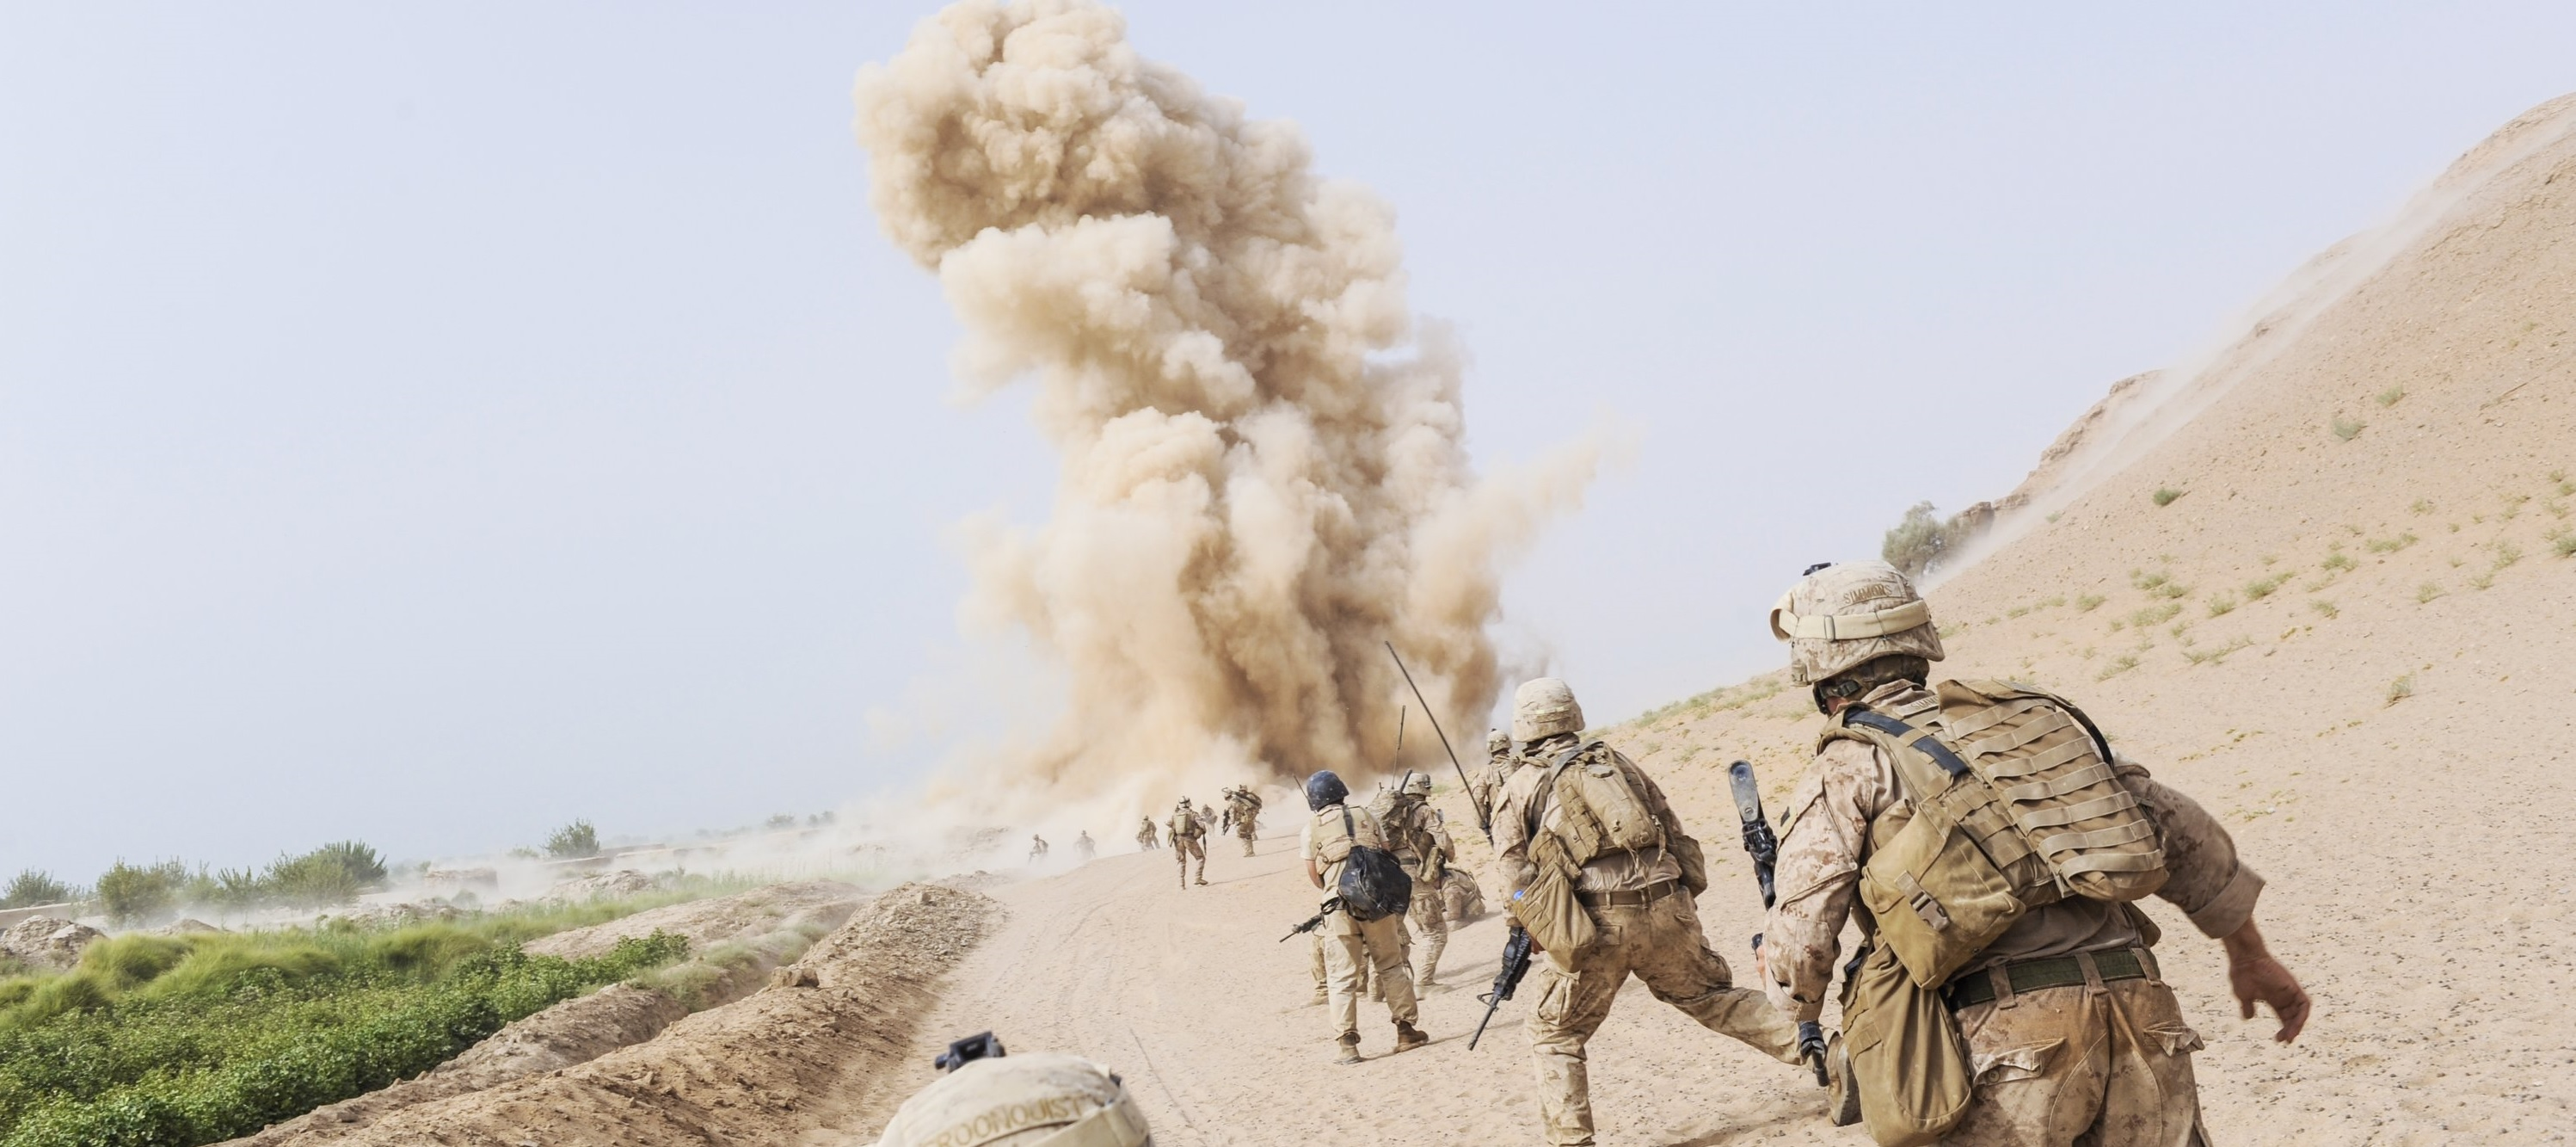 the hidden neurological impact of explosions on military